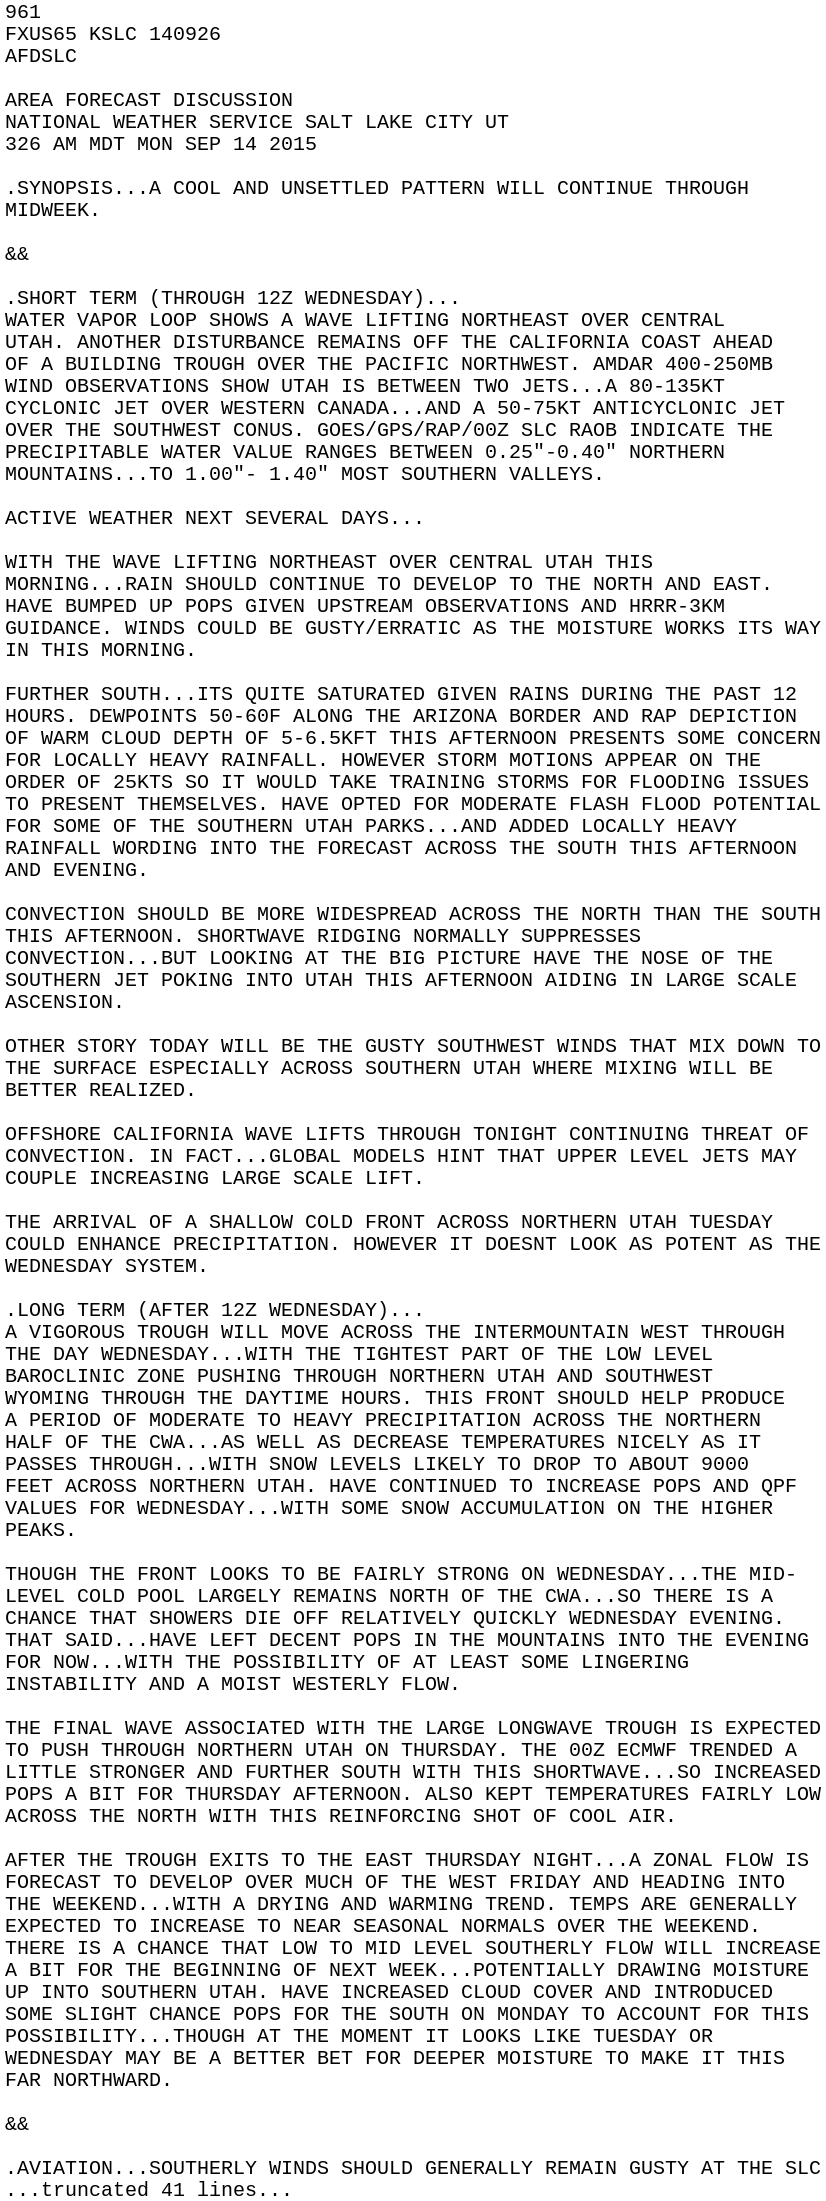 IEM :: AFD from NWS SLC